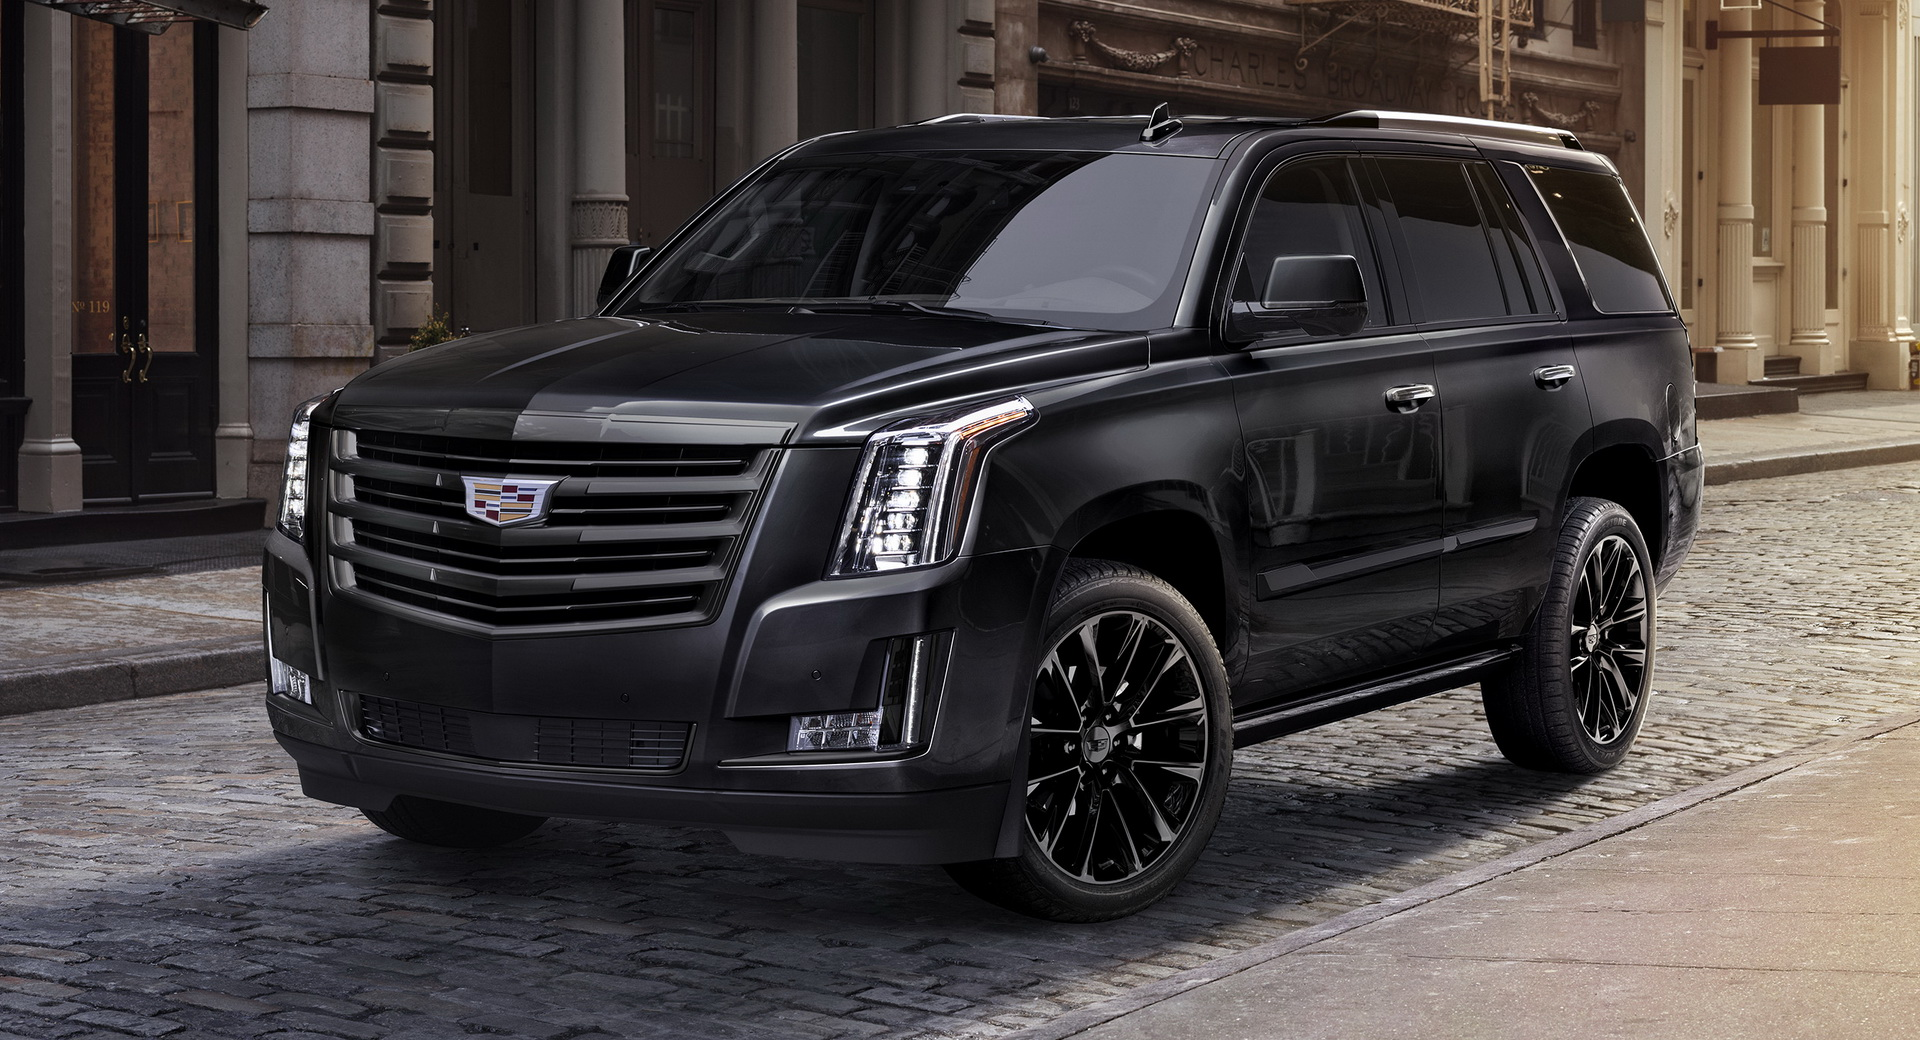 2019 Cadillac Escalade Arrives In L.A. With New Appearance